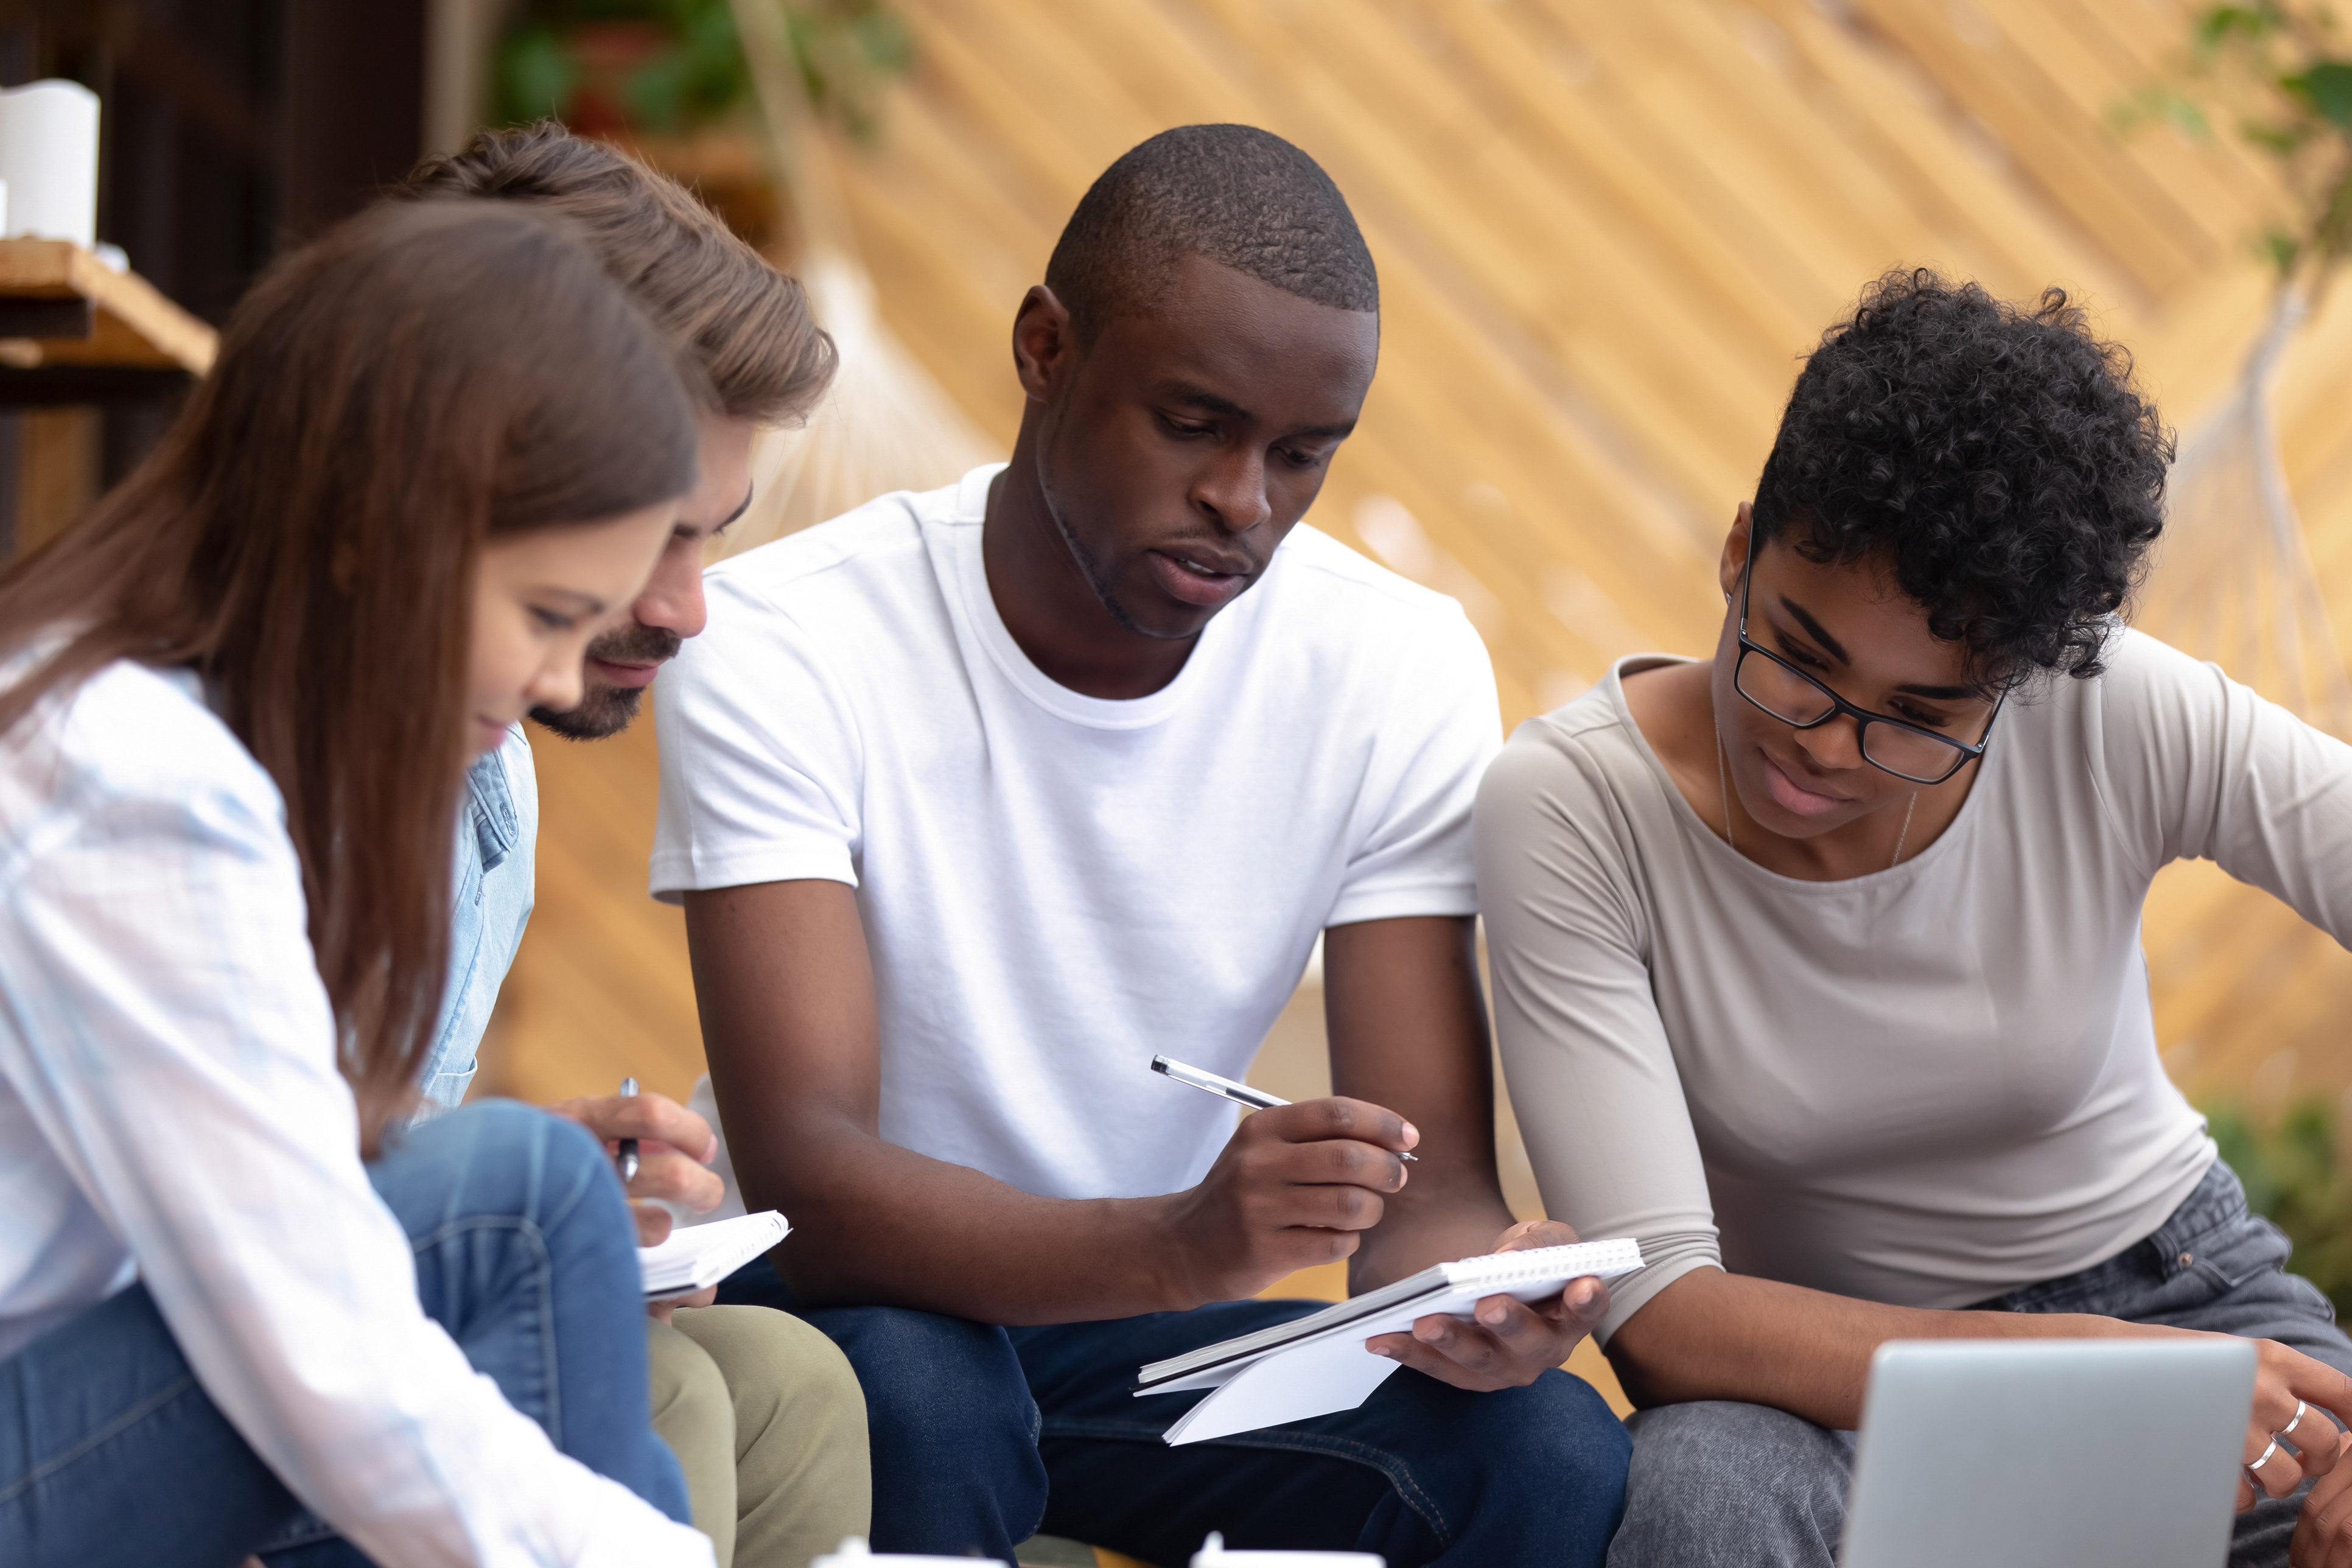 Beautiful smart girls handsome clever guys sitting in cozy place studying writing notes thoughts in notepad. Skilled man helps to teammates understand lecture learn preparing for examination together